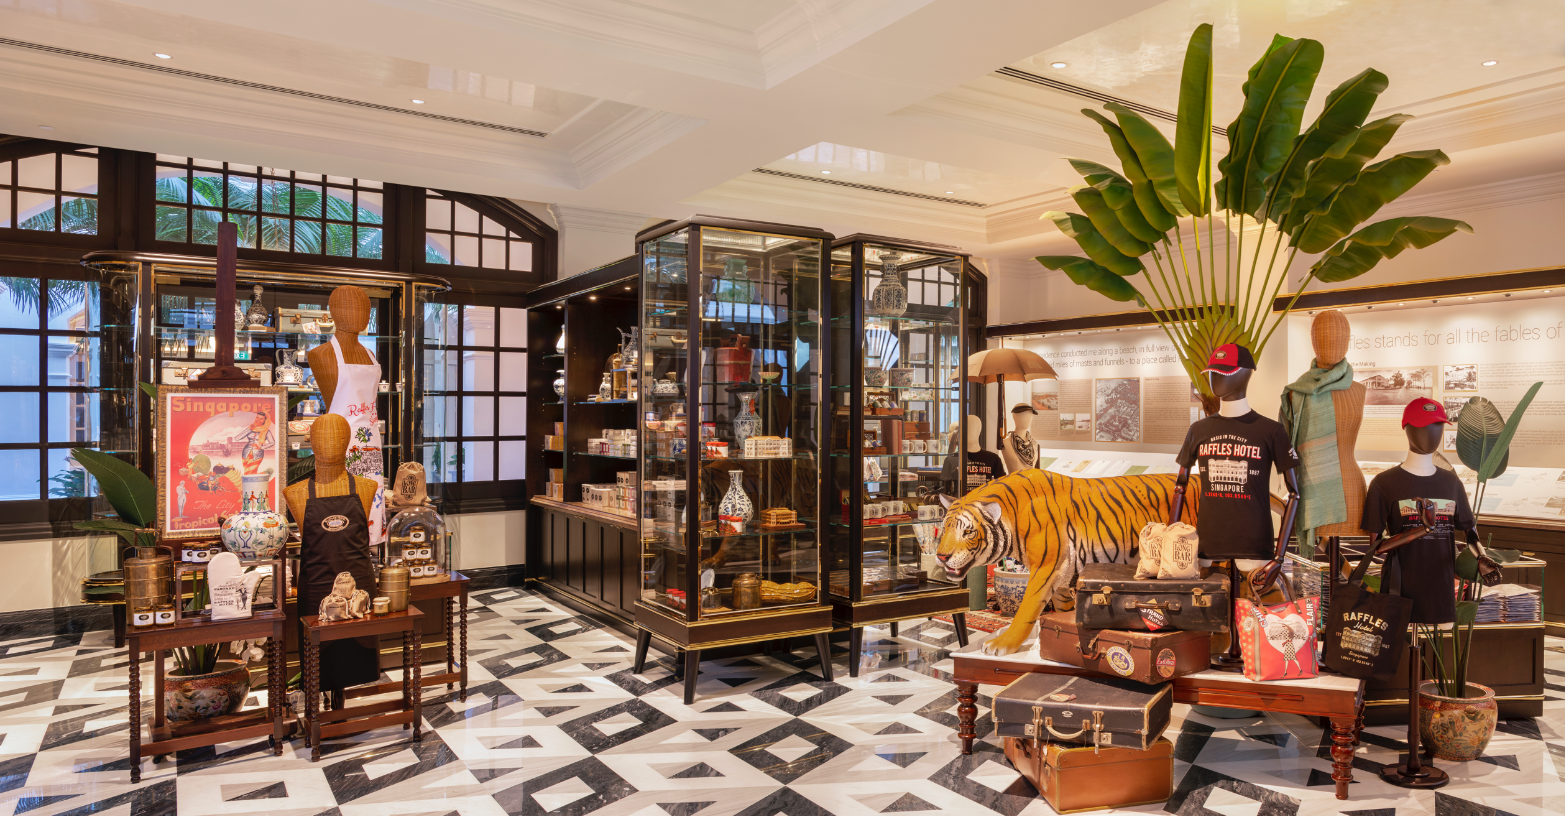 Why The Arcade At The Raffles Hotel Singapore Should Be Your Next Shopping Spree Destination